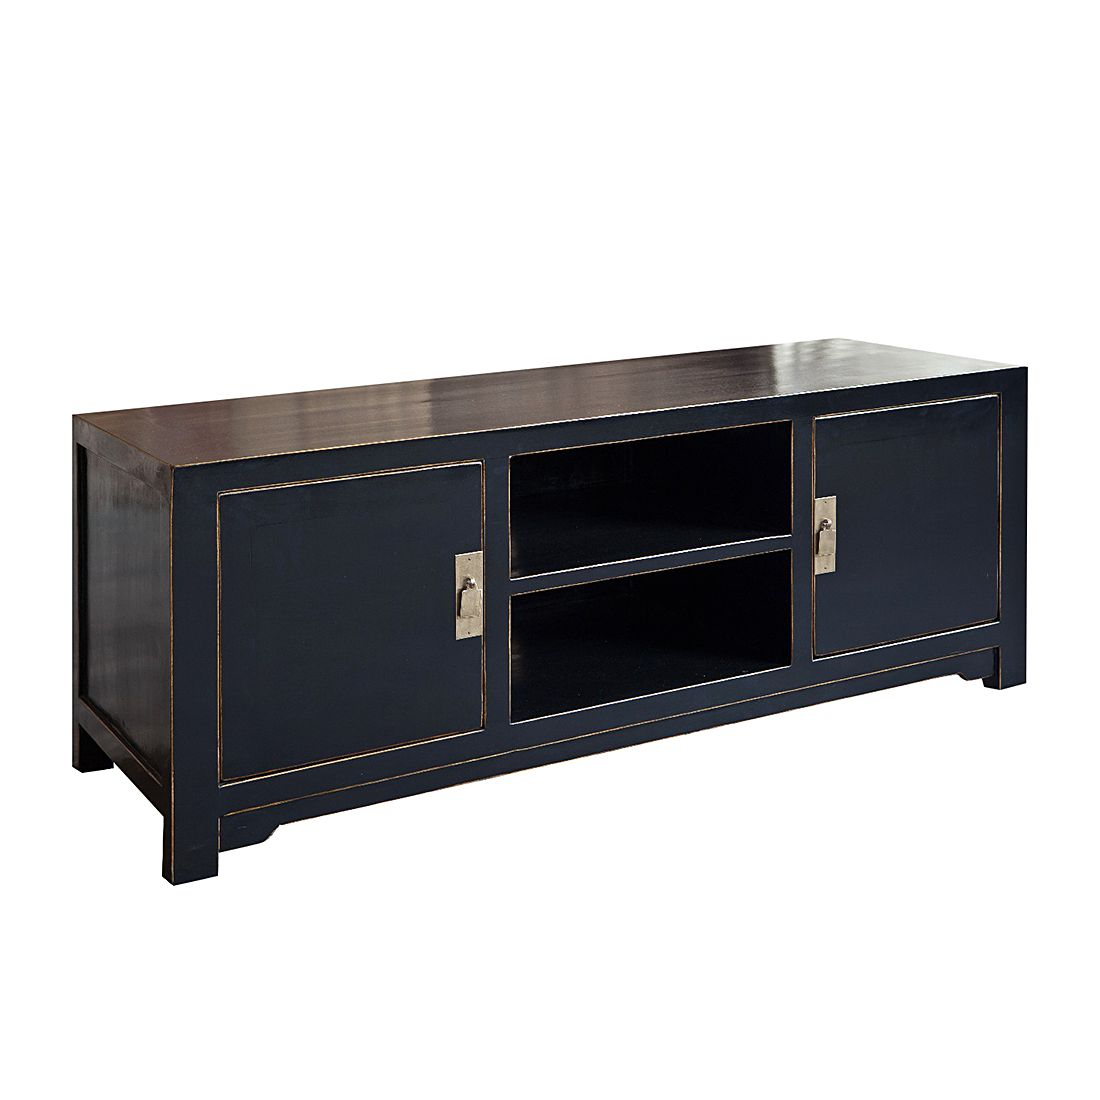 tv lowboard jinan pappel massiv schwarz lackiert. Black Bedroom Furniture Sets. Home Design Ideas